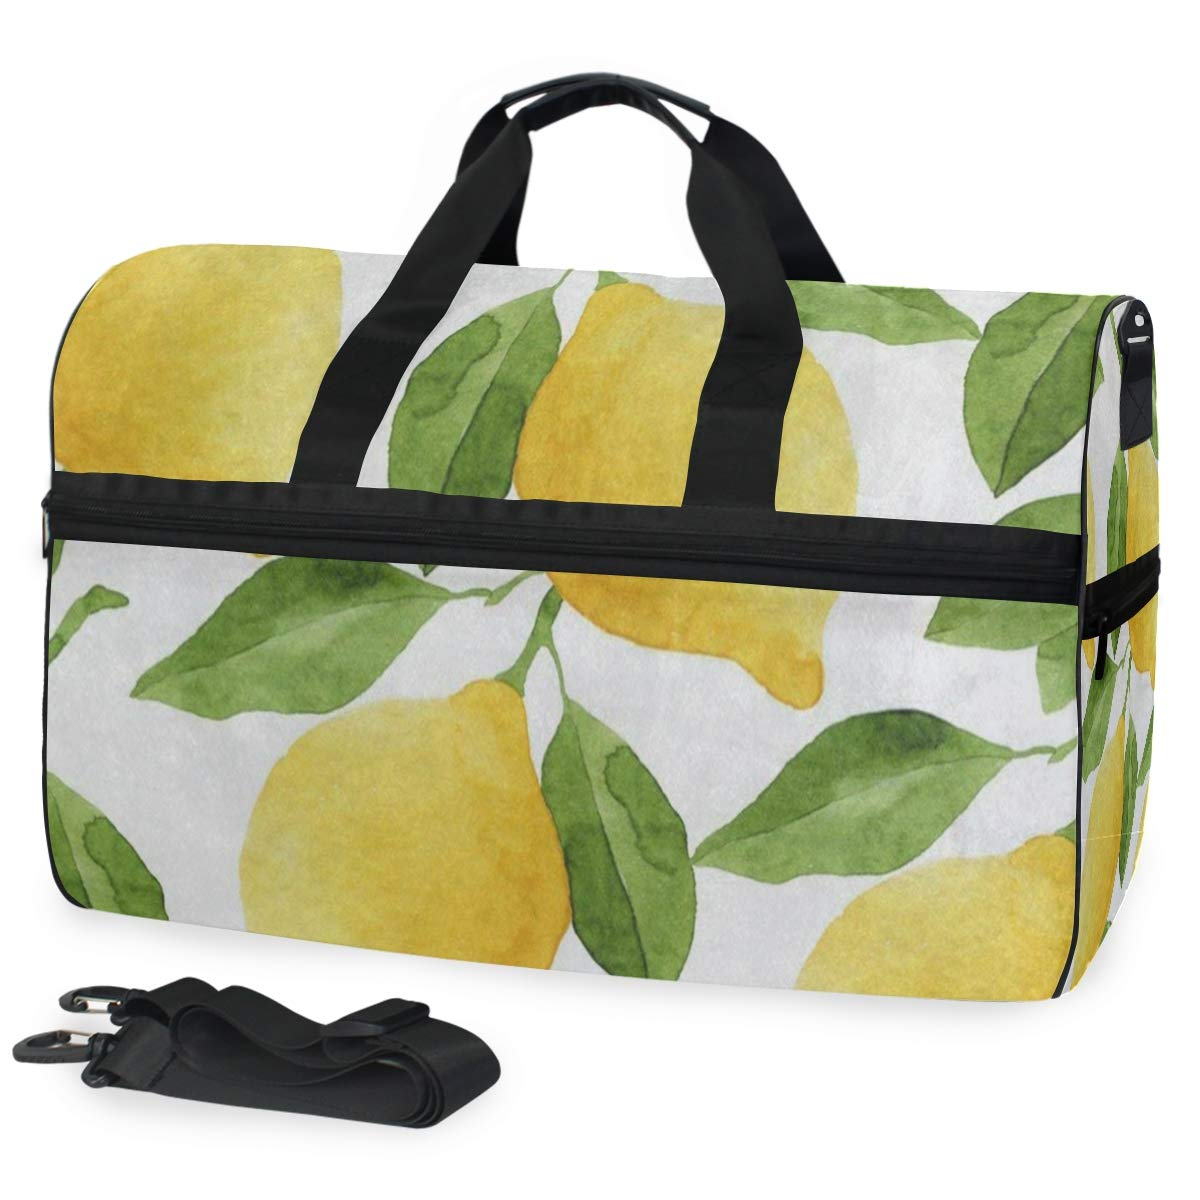 Colored Lemon Tree Leaf Large Canvas shoulder bag with Shoe Compartment Travel Tote Luggage Weekender Duffle Bag